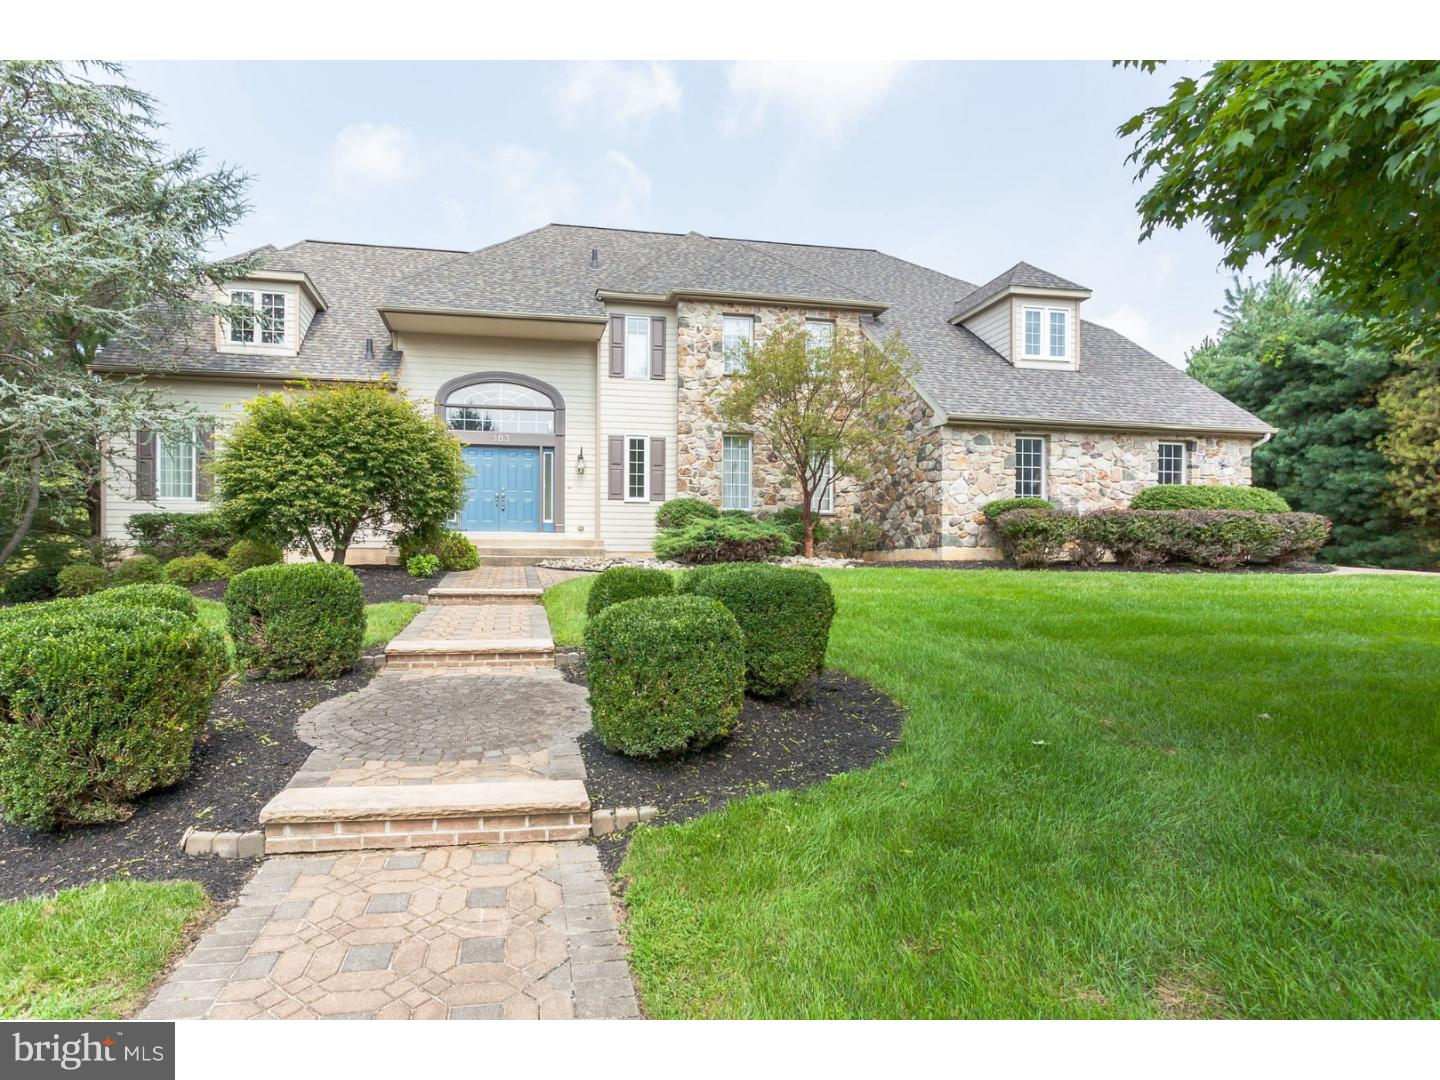 103 HARVEST LANE, BROOMALL, PA 19008